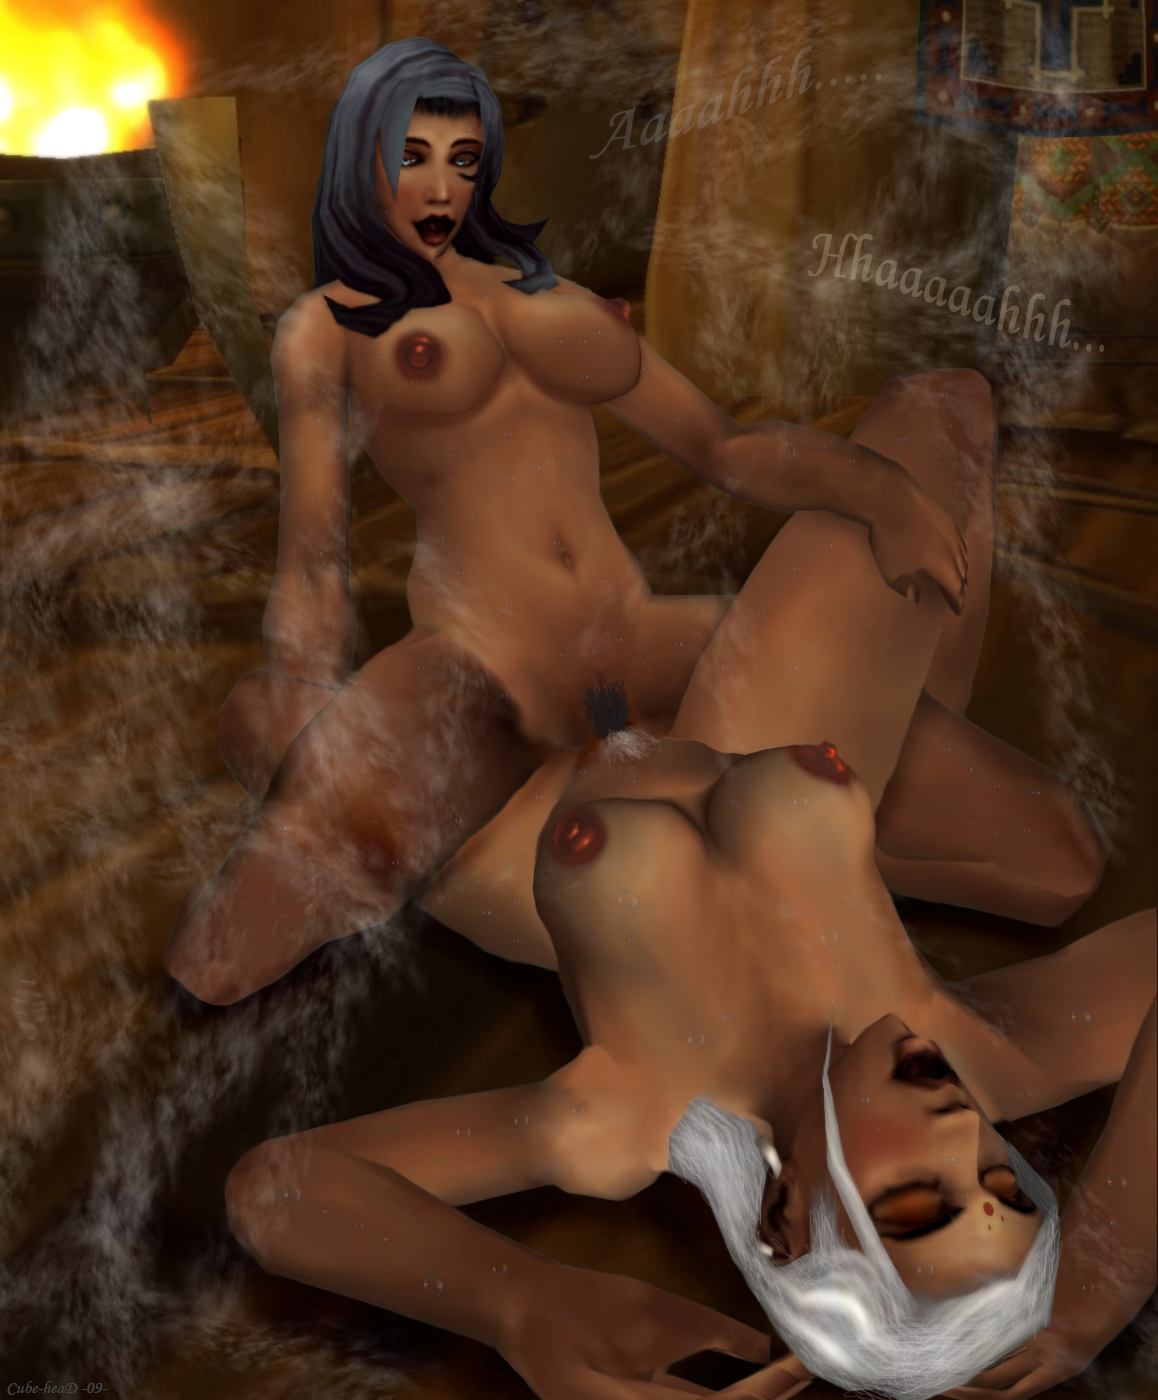 World of porncraft jizzart pics rule34 exposed vids